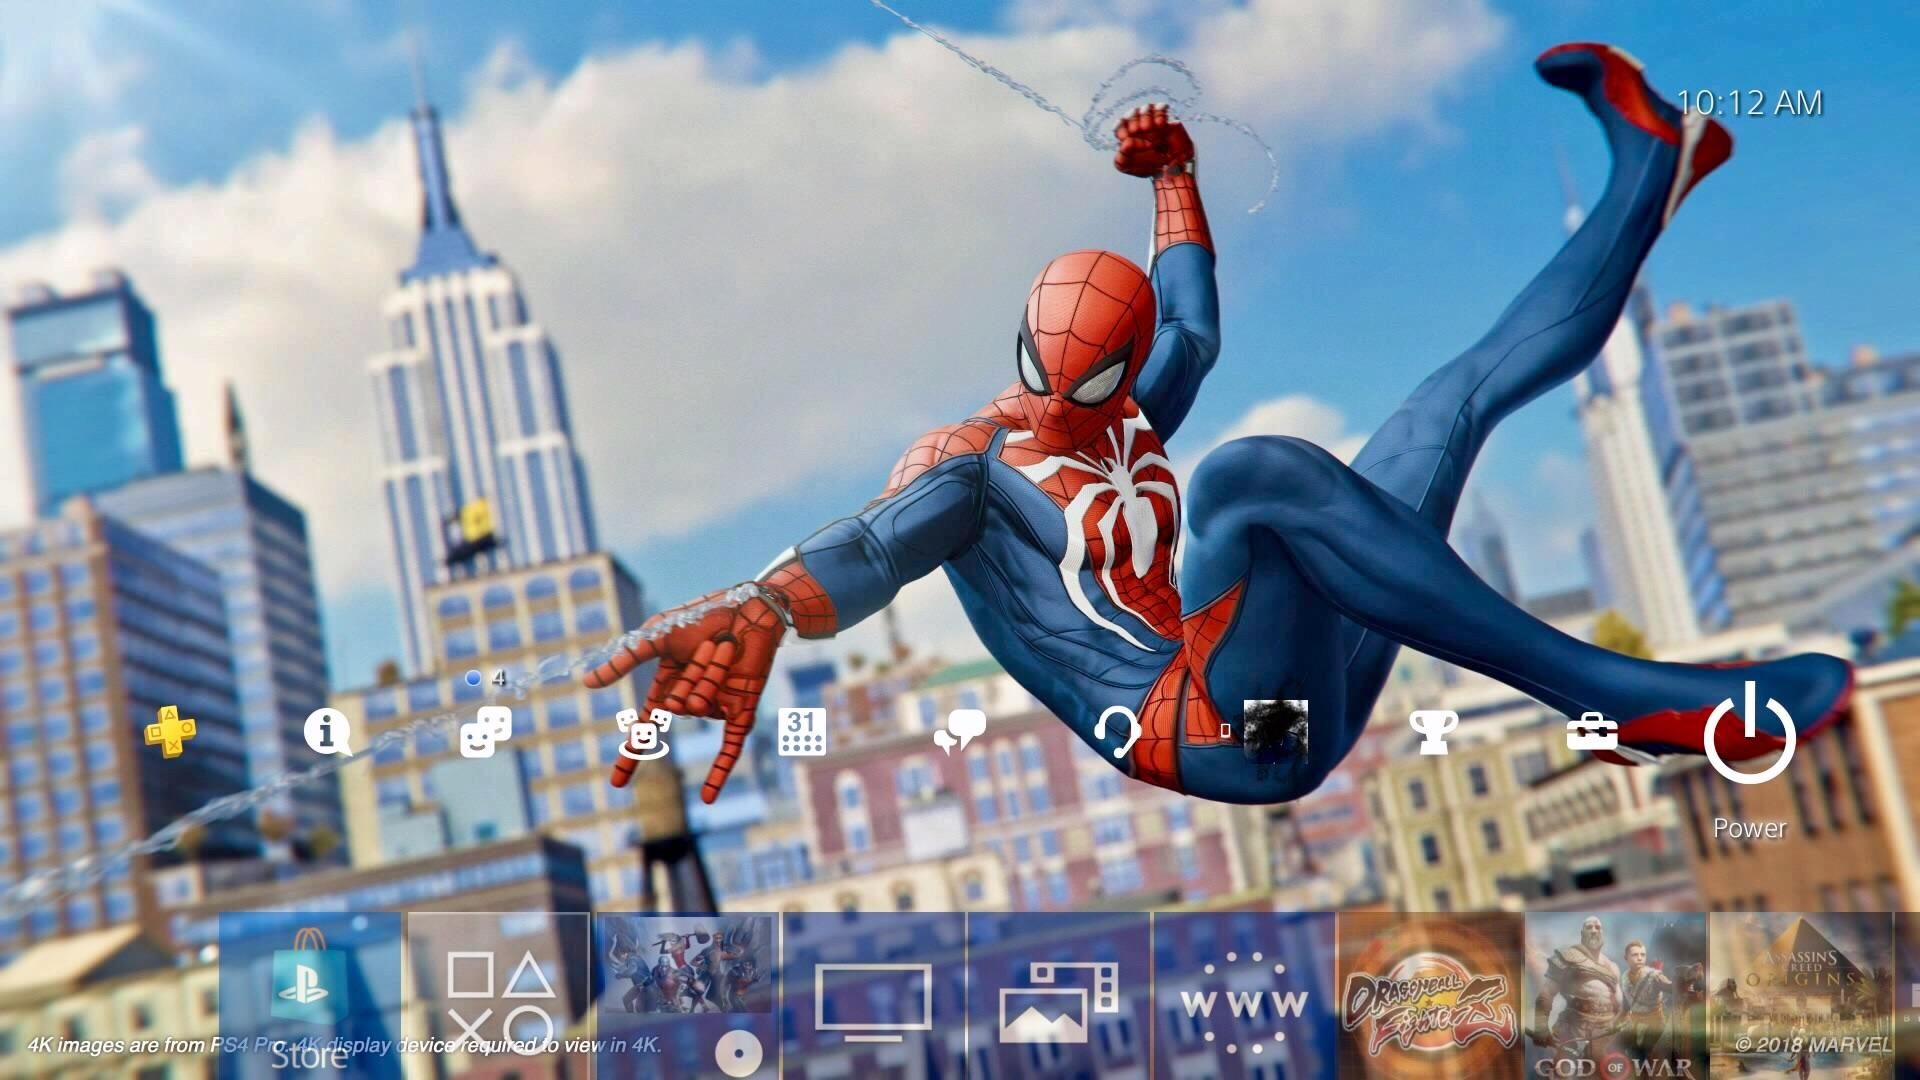 My new PS4 wallpaper SpidermanPS4 1920x1080